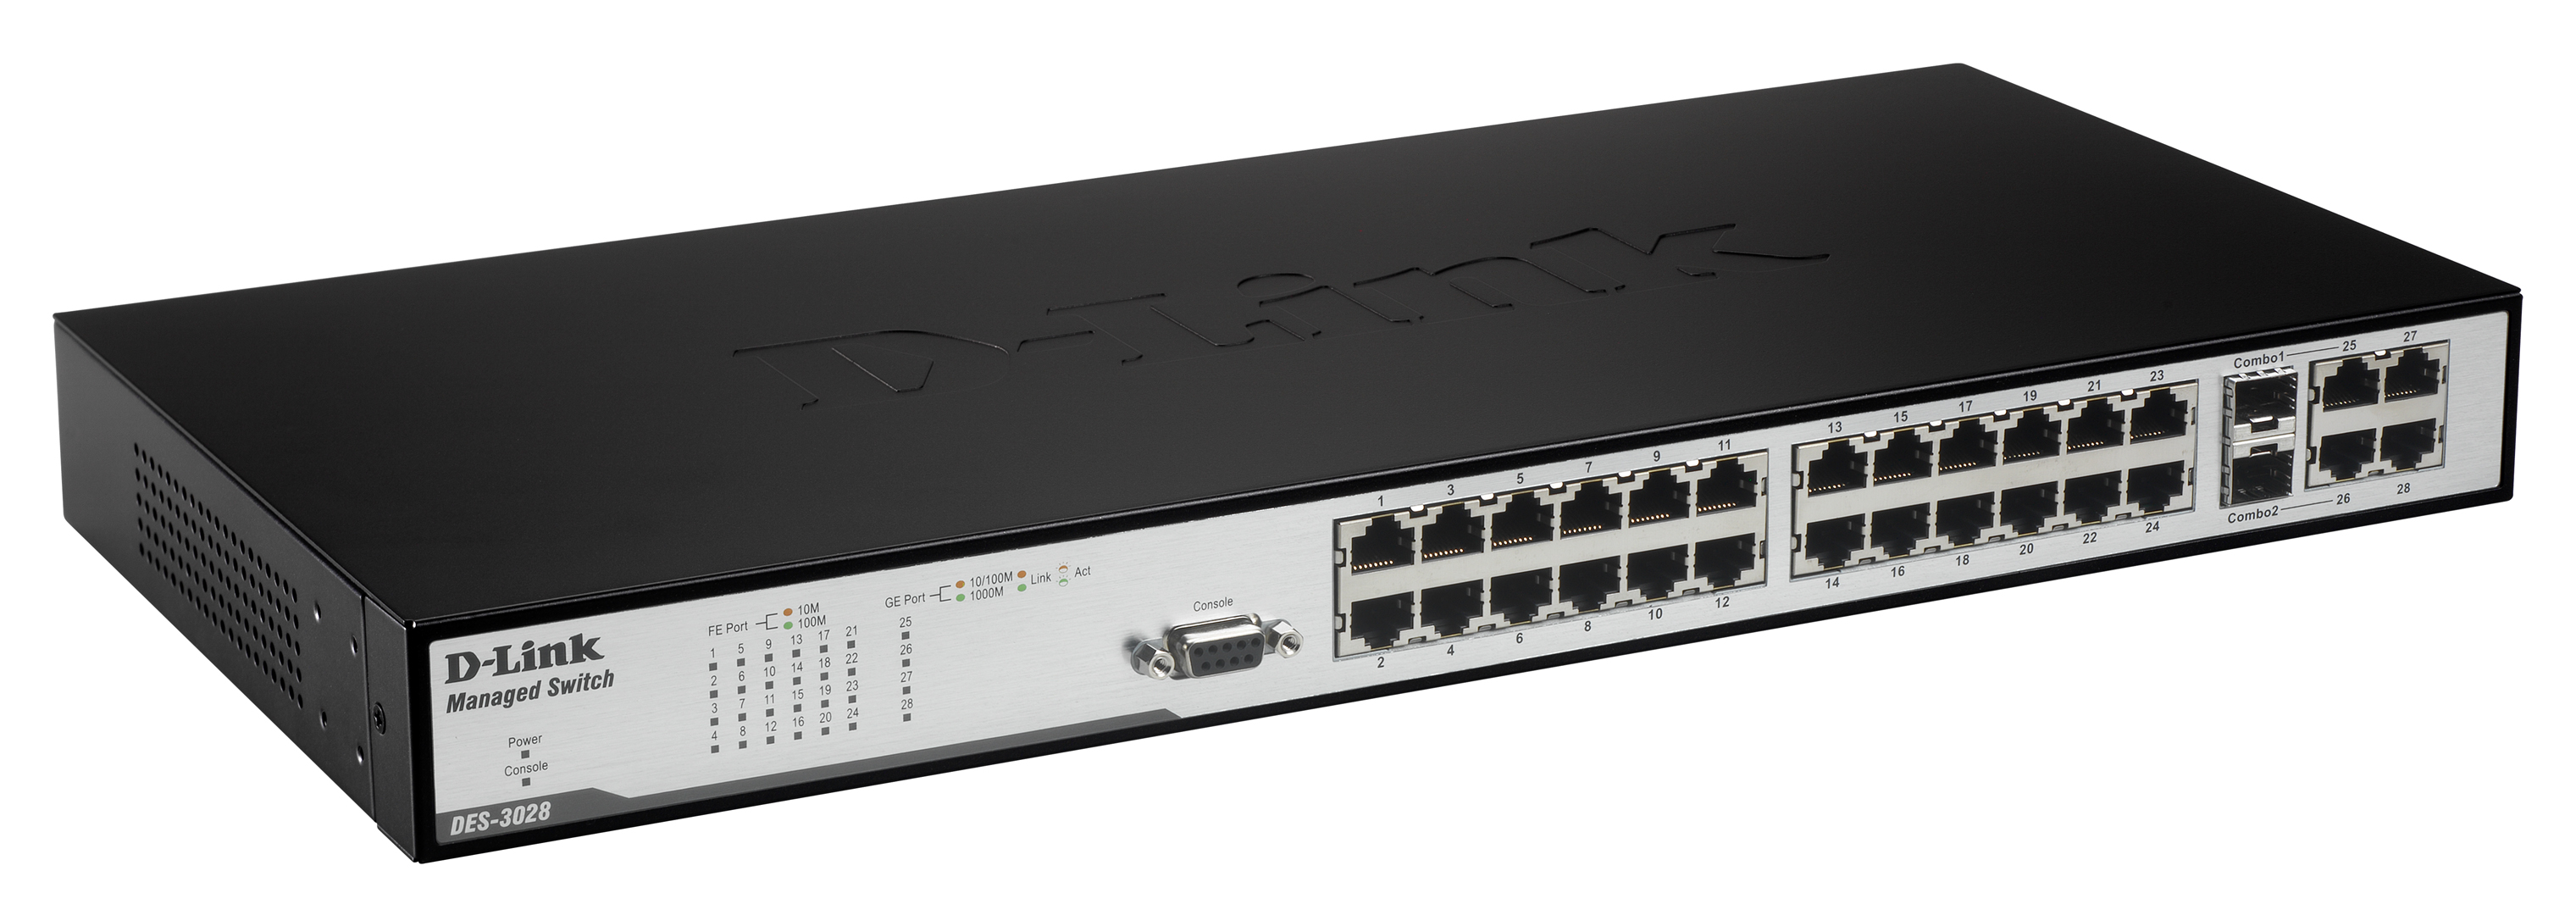 D-Link DES-3028G Fast Ethernet L2+ Switch Driver for Mac